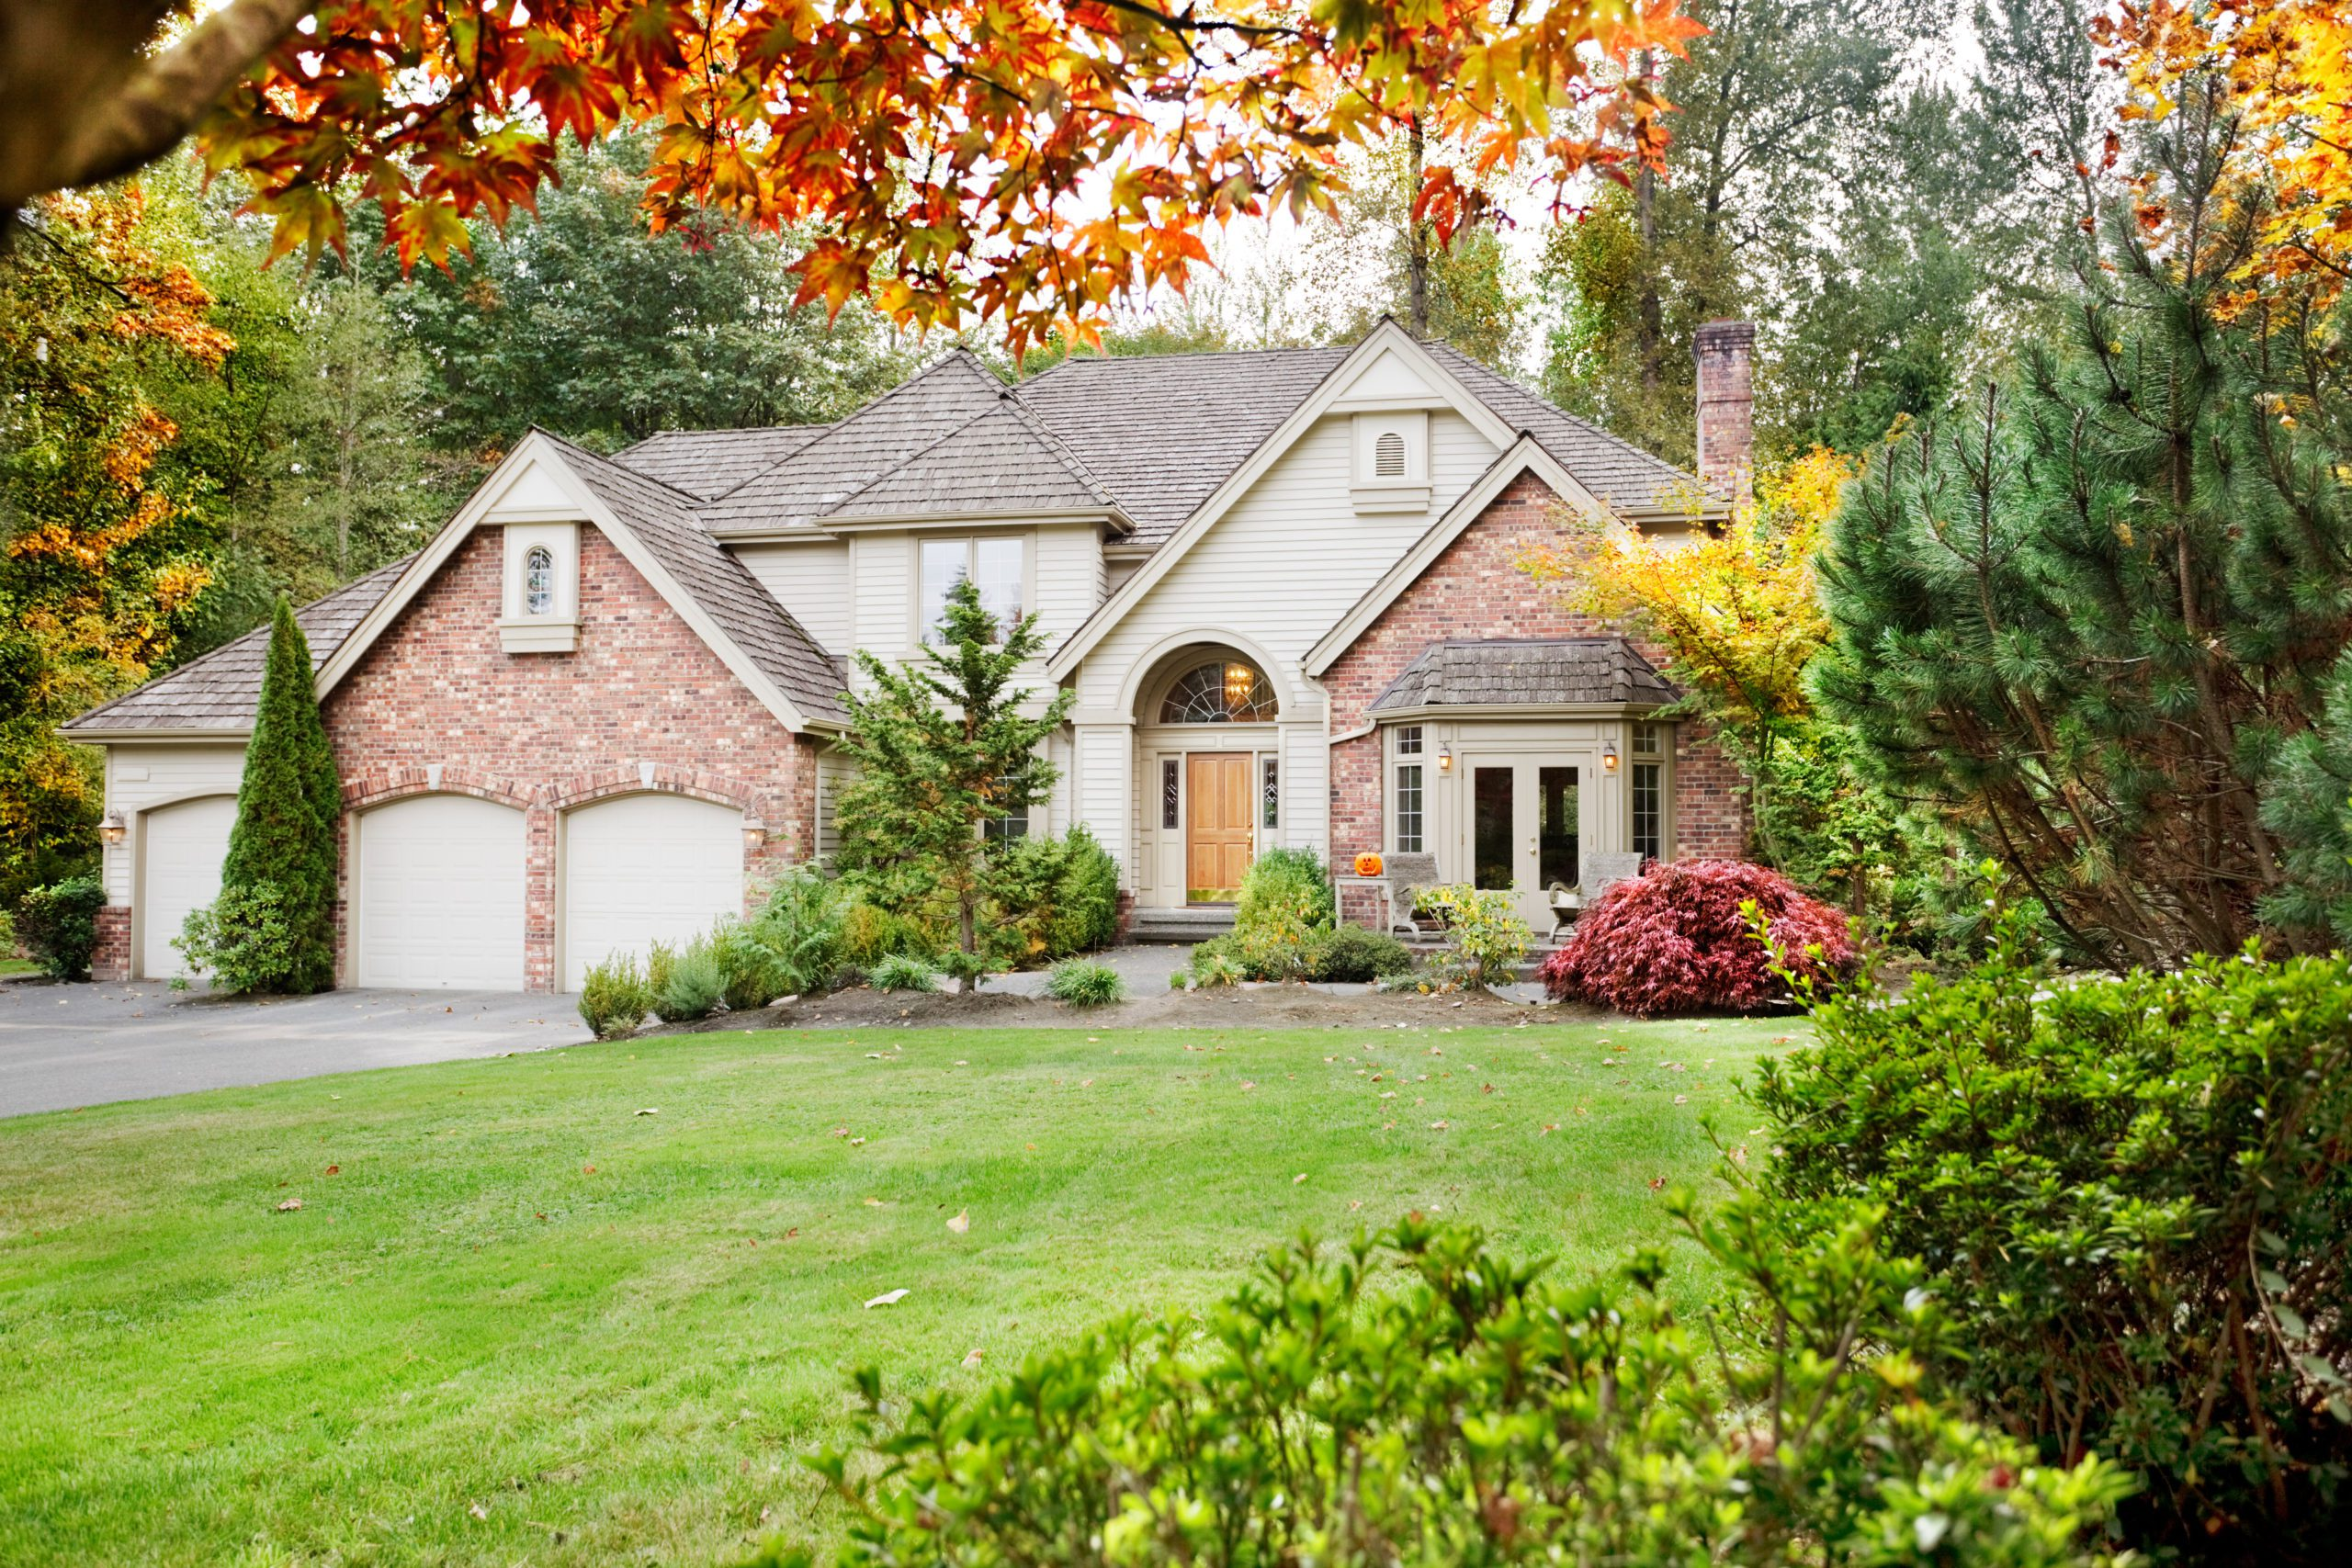 Blog - Suburban home from the front garden in early Autumn as the leaves begin to turn